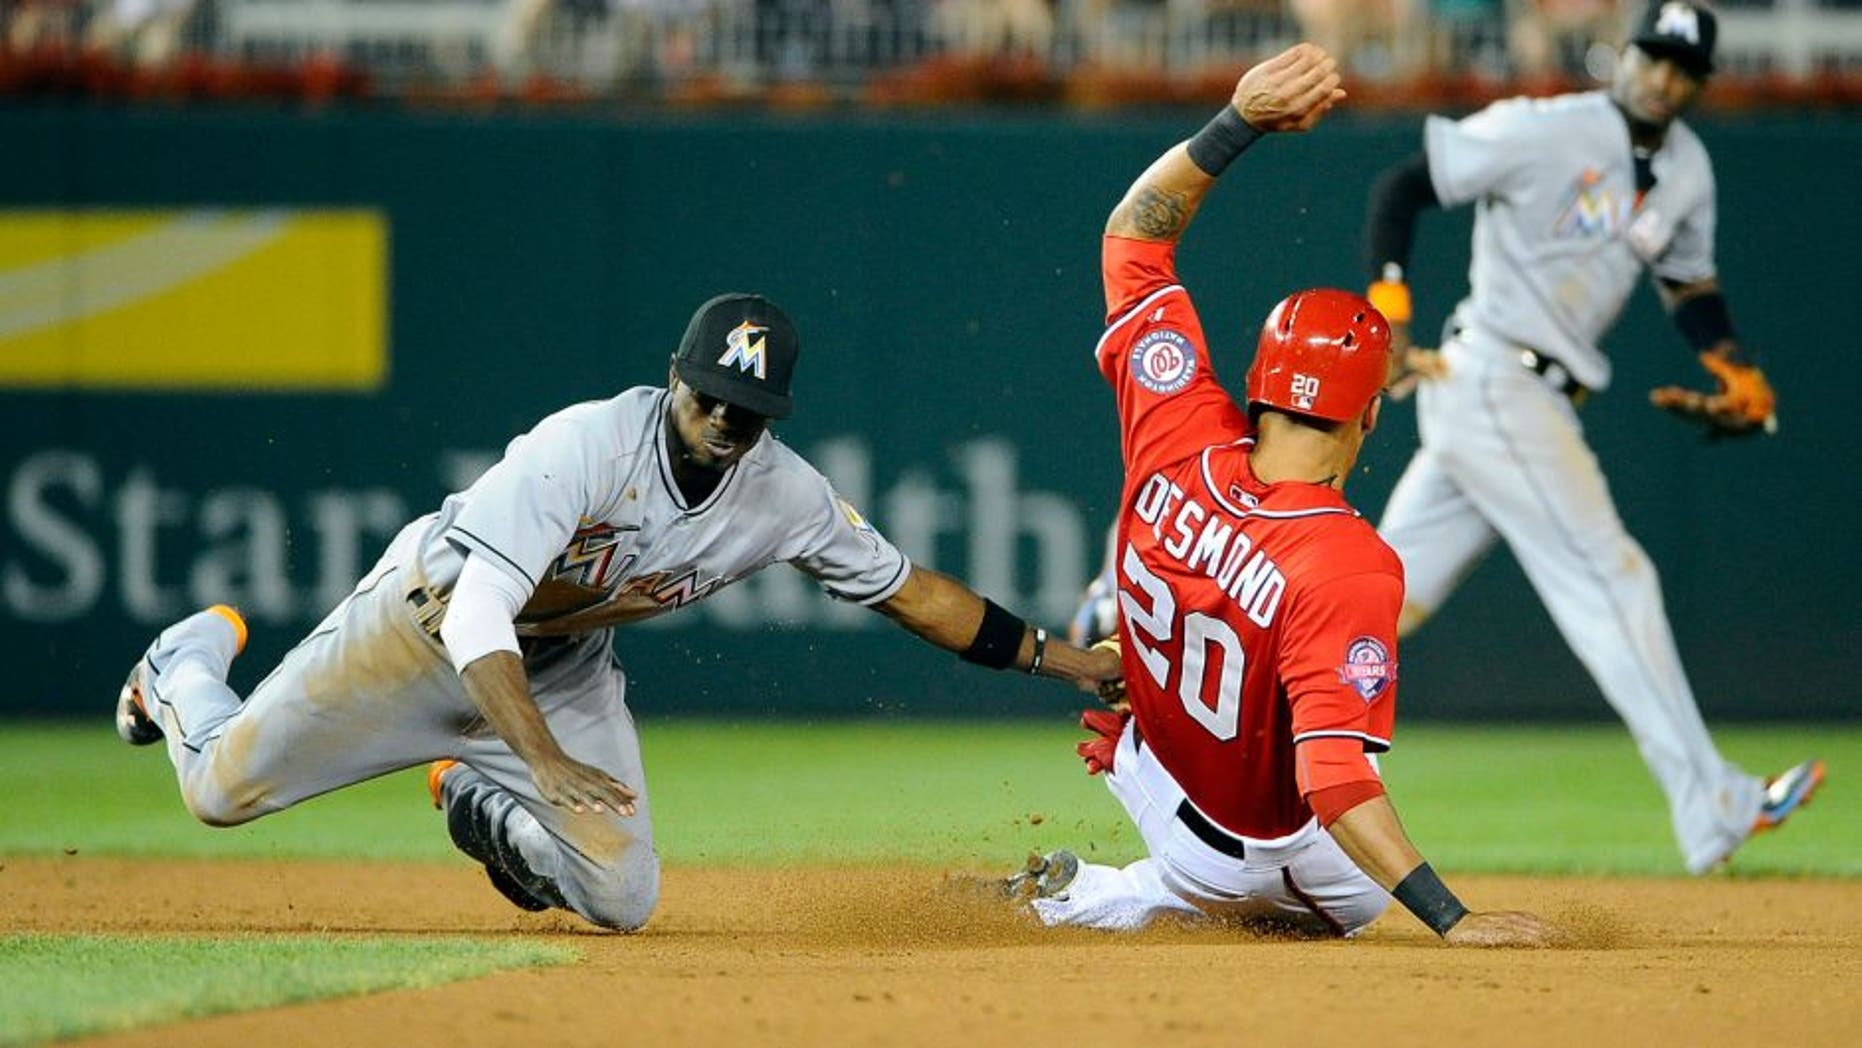 Aug 29, 2015; Washington, DC, USA; Miami Marlins second baseman Dee Gordon (9) tags out Washington Nationals shortstop Ian Desmond (20) attempting to steal second base during the fourth inning at Nationals Park. Mandatory Credit: Brad Mills-USA TODAY Sports